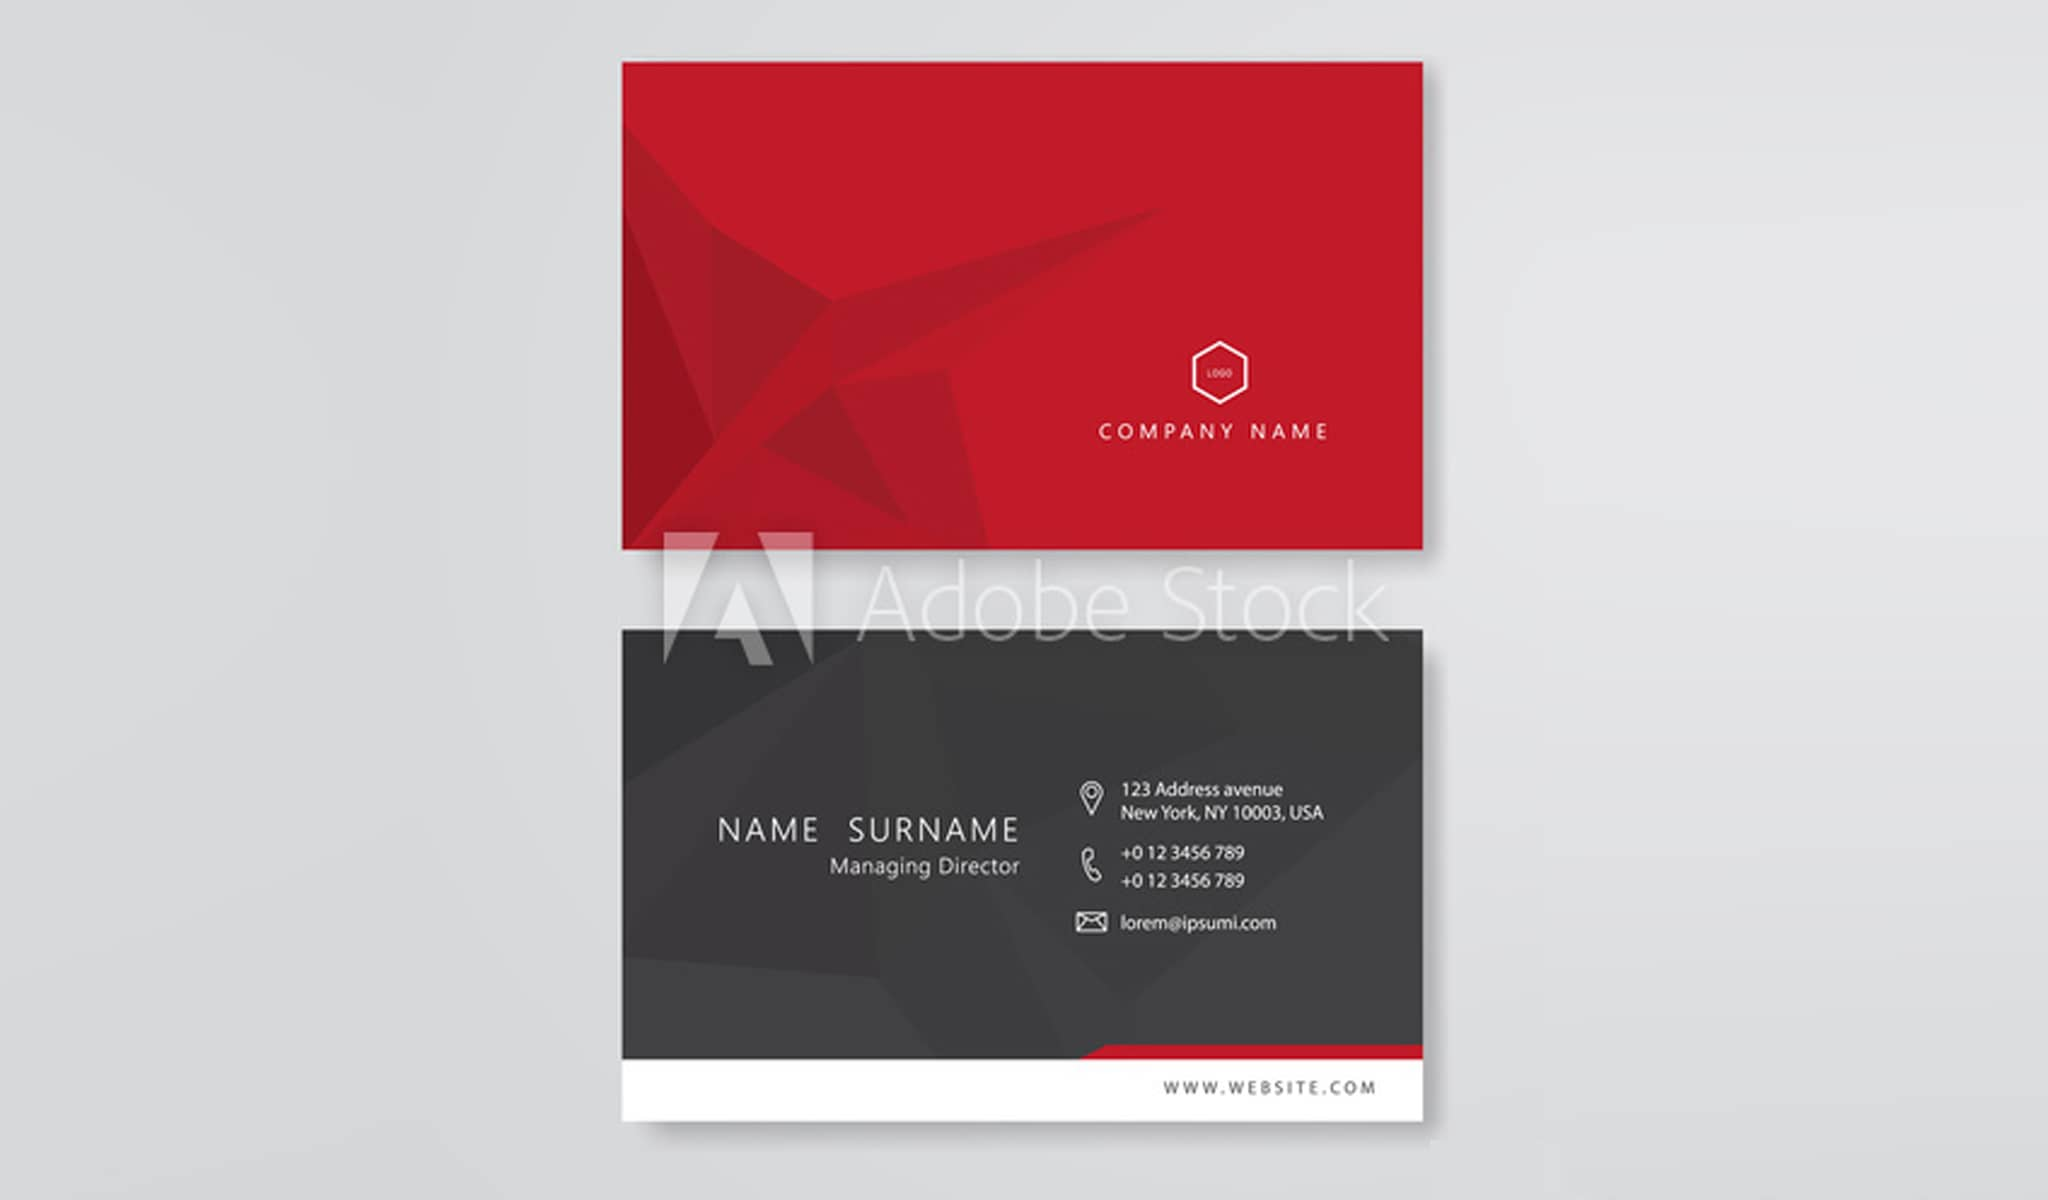 Red's Sublime Business Card Template